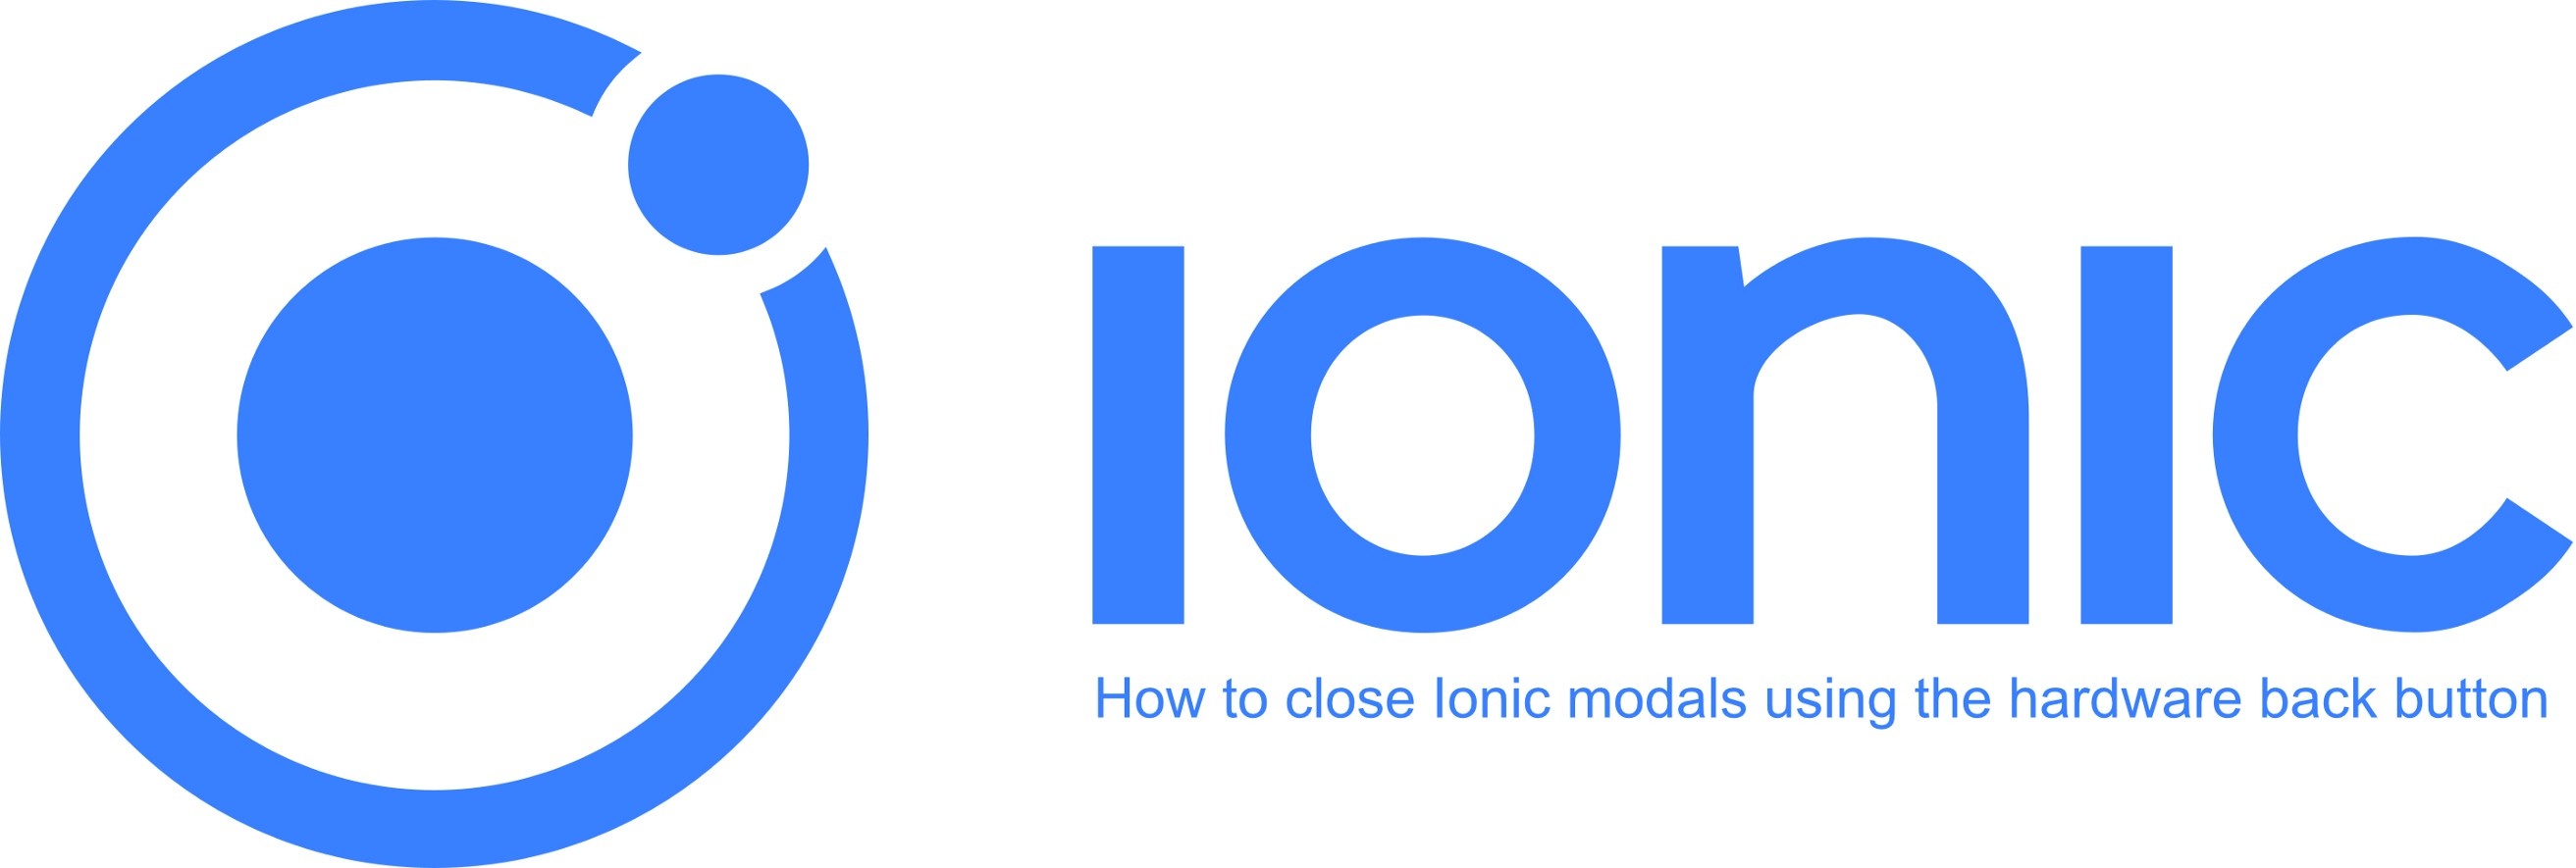 How to close Ionic modals using the hardware back button